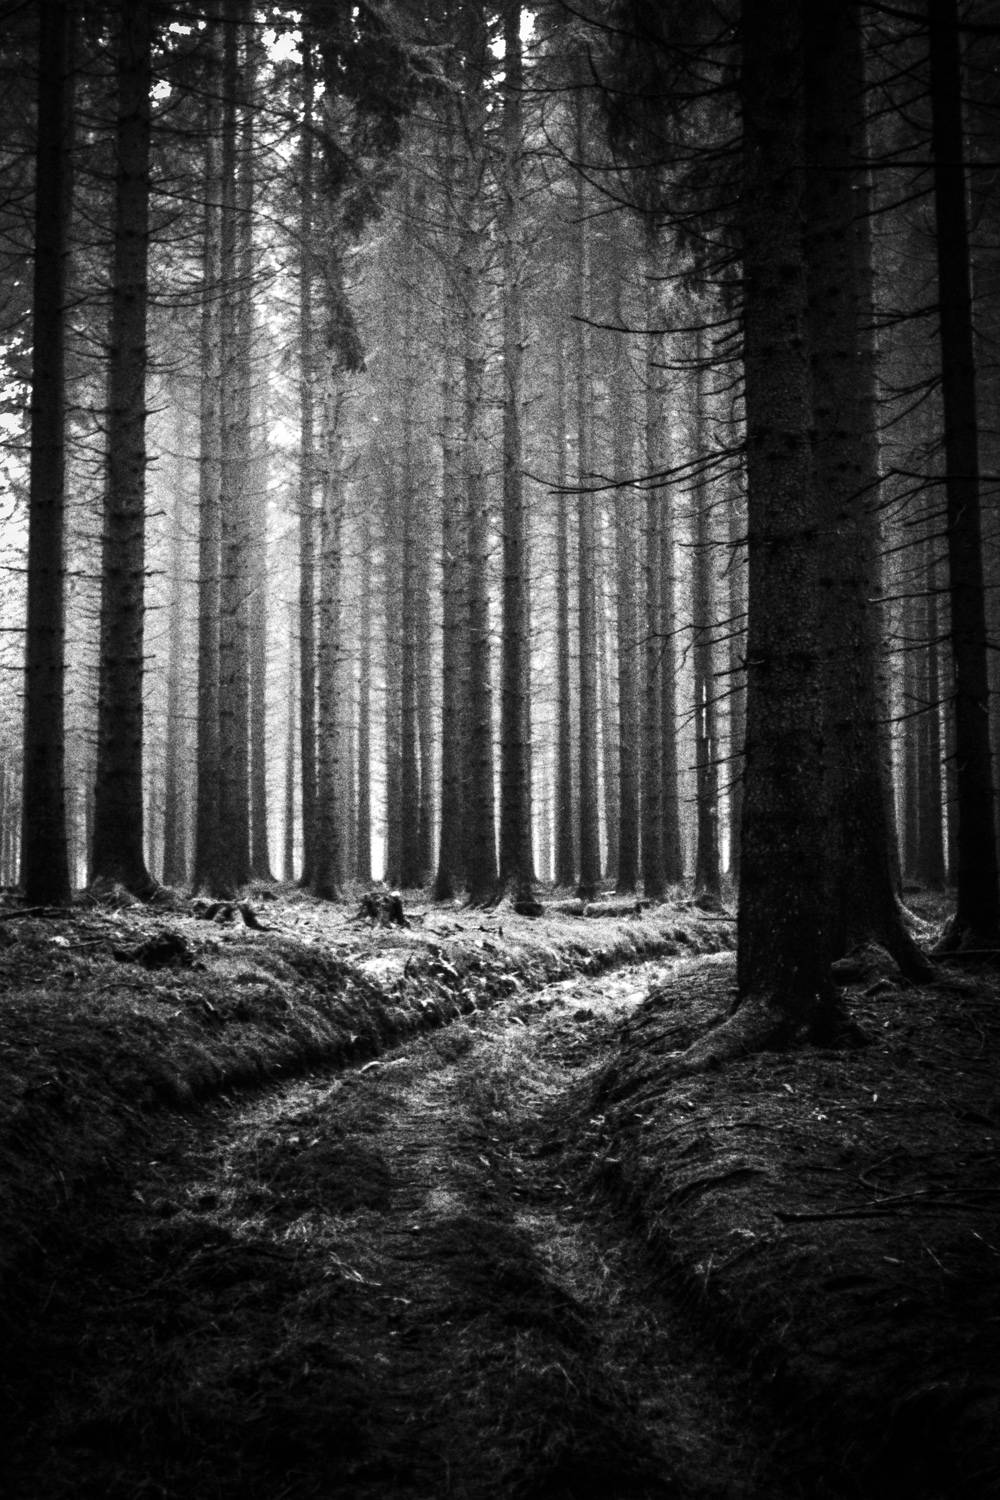 Christopher_Schmidtke_Into_the_woods_4